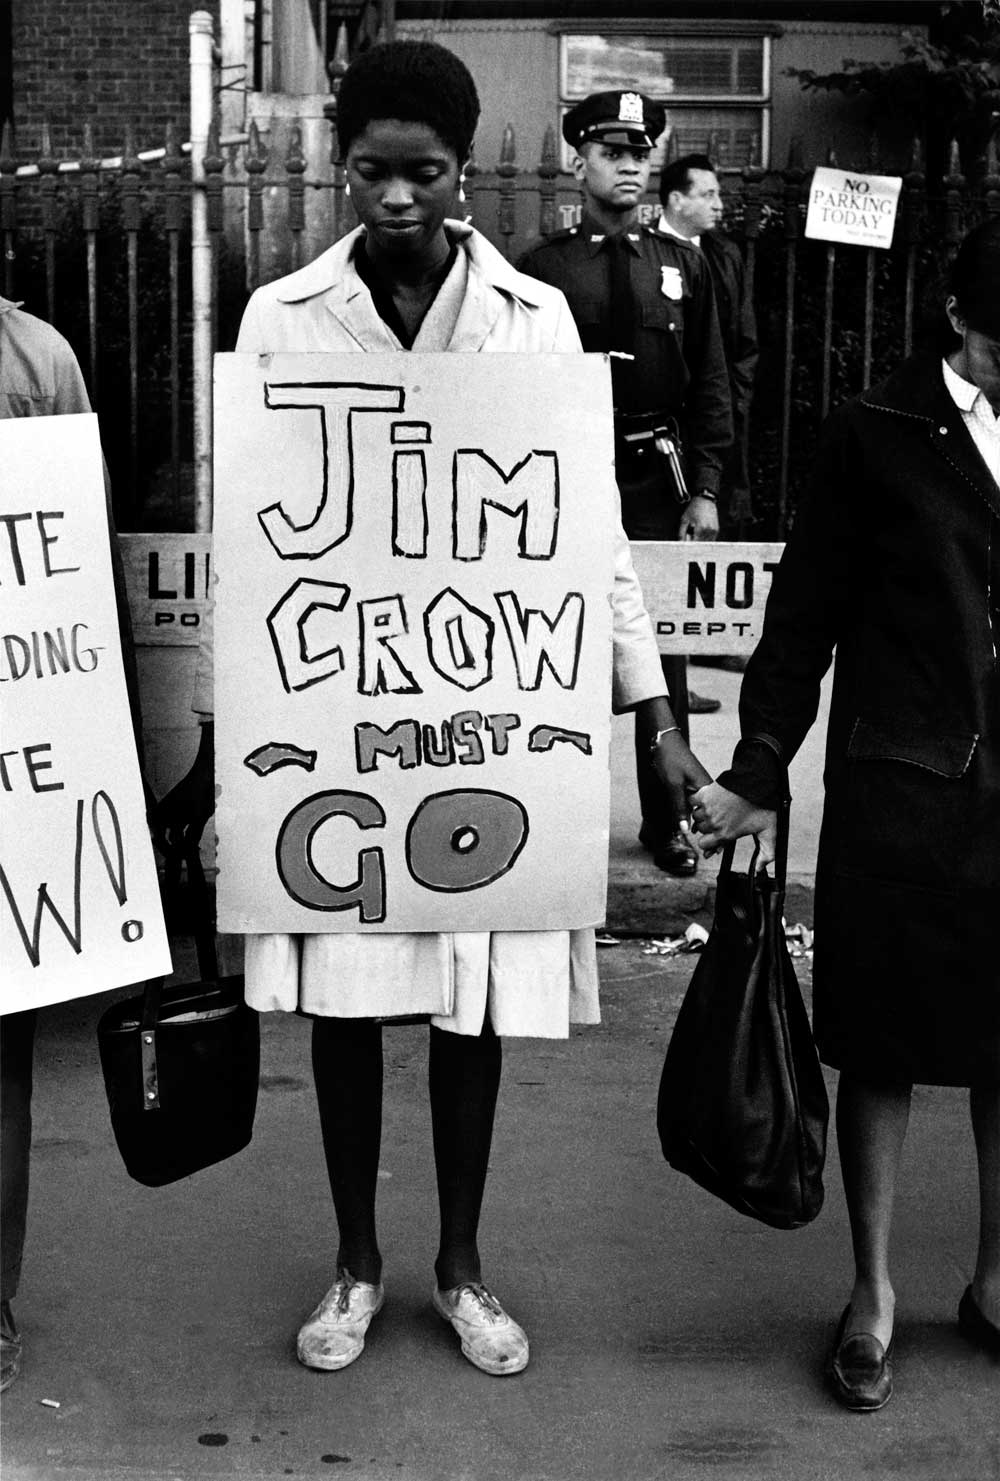 """a report on the jim crow law of racial segregation in the united states of america That country was the united states """"america in the nazis admired the jim crow-e ra laws that """"that american racial classification law was much."""